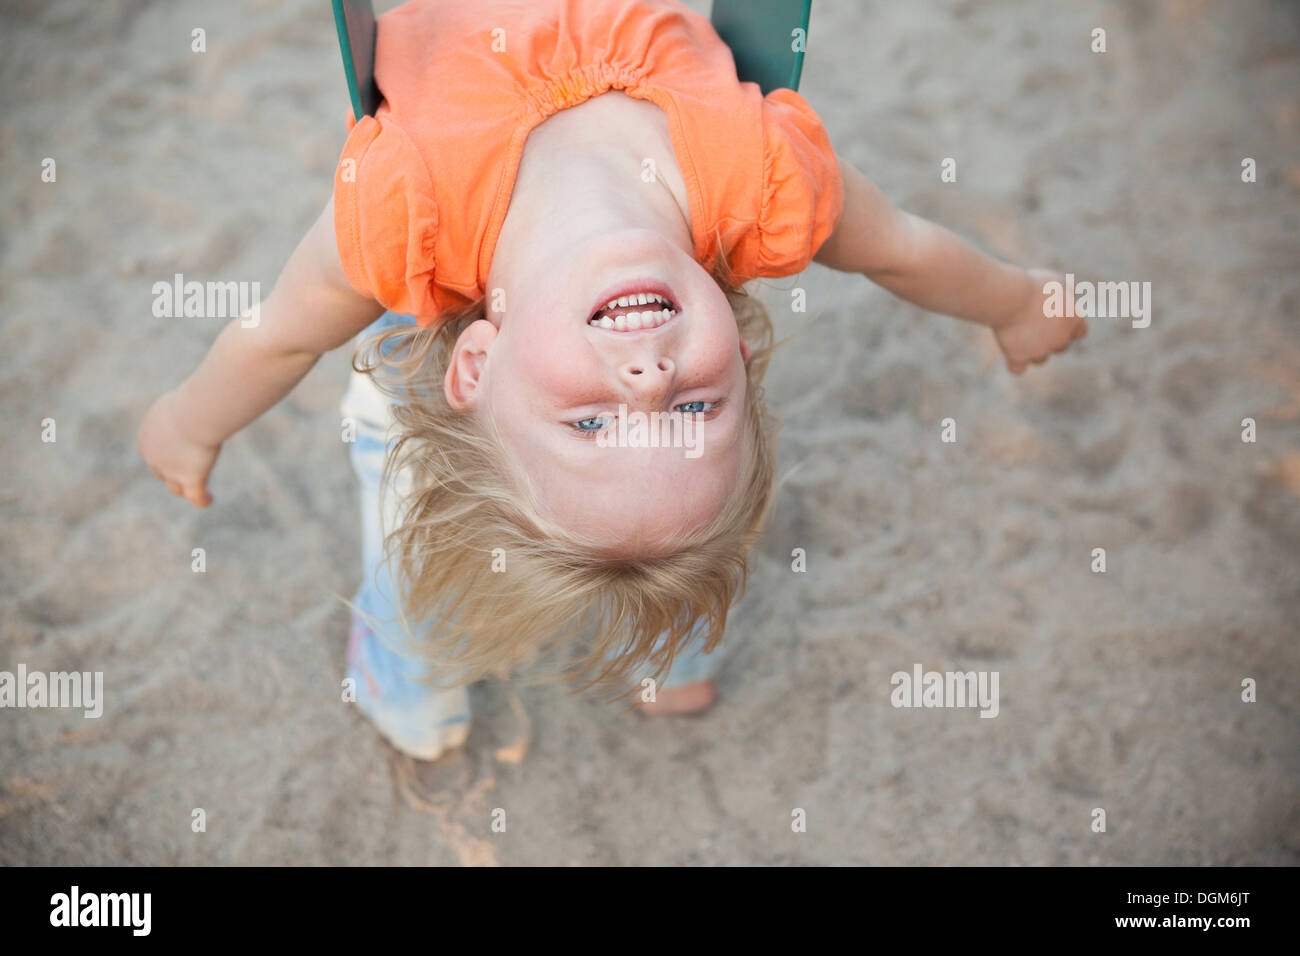 A child playing outdoors. A girl hanging upside down on a swing. - Stock Image